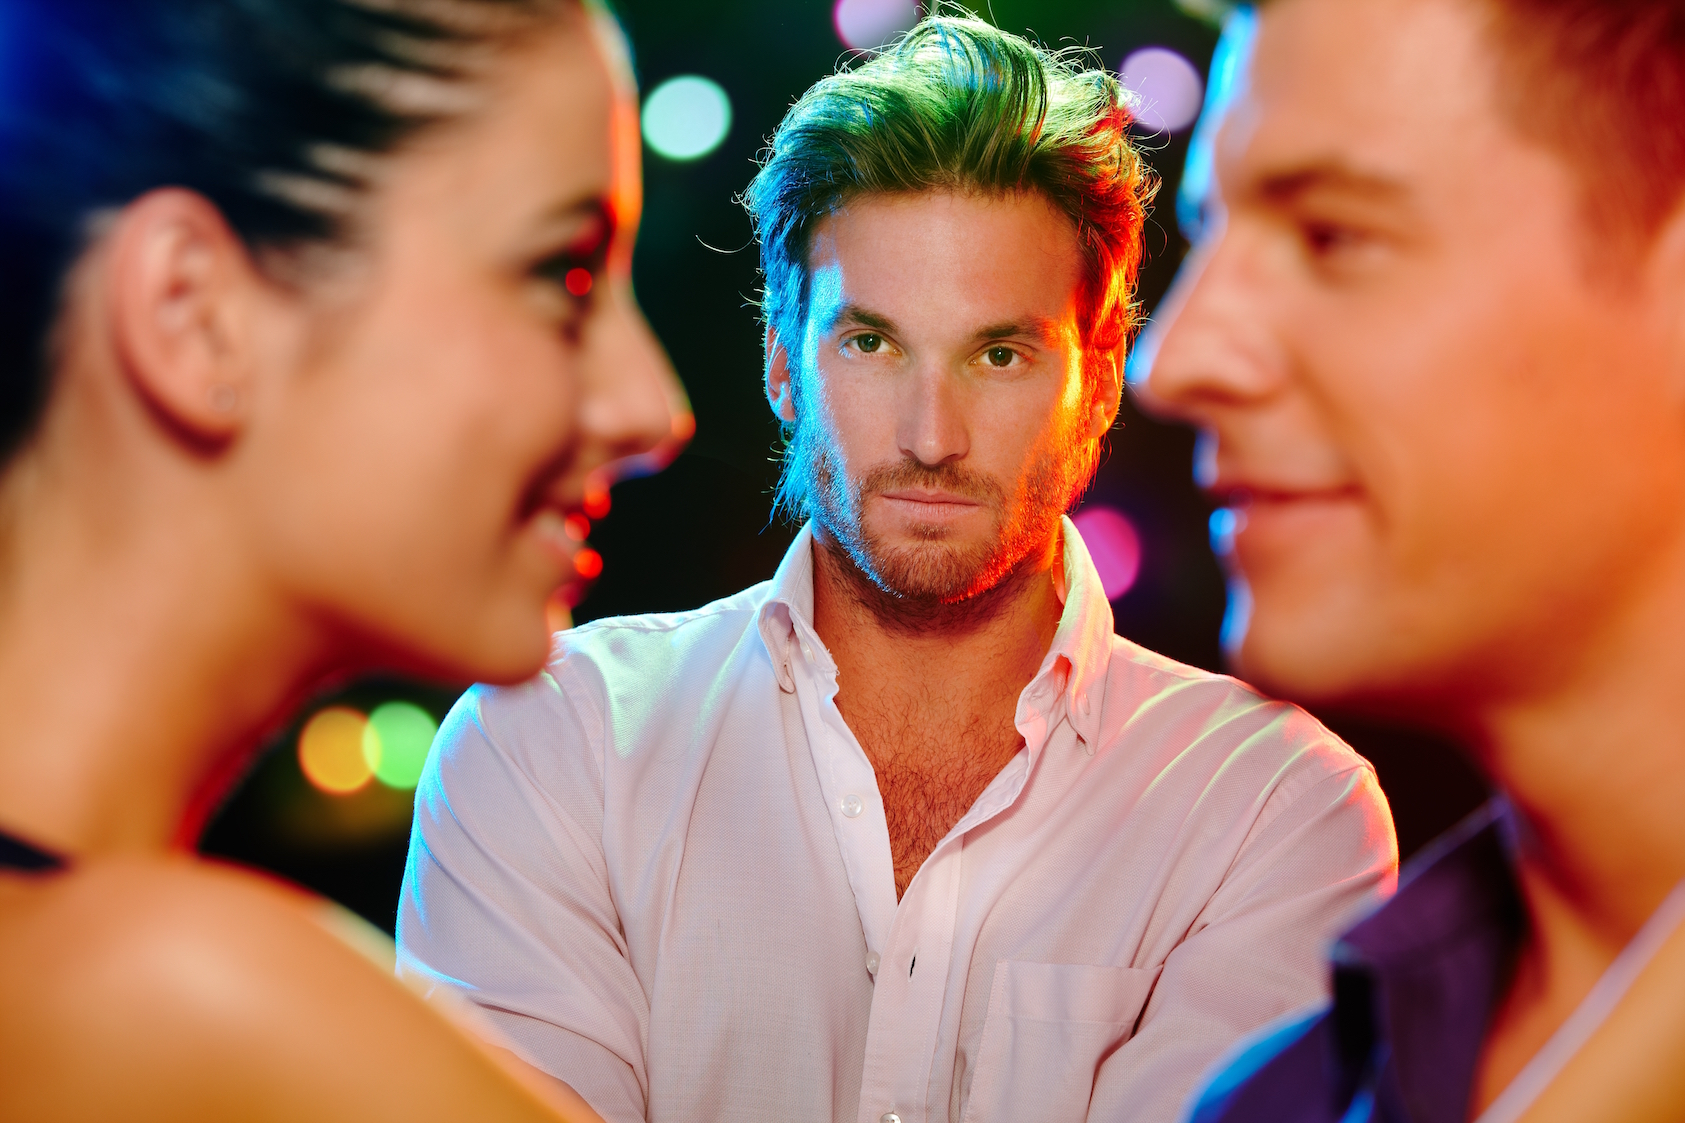 Jealousy leads to increased brain activity in areas associated with social pain and pair bonding in a monogamous animals.